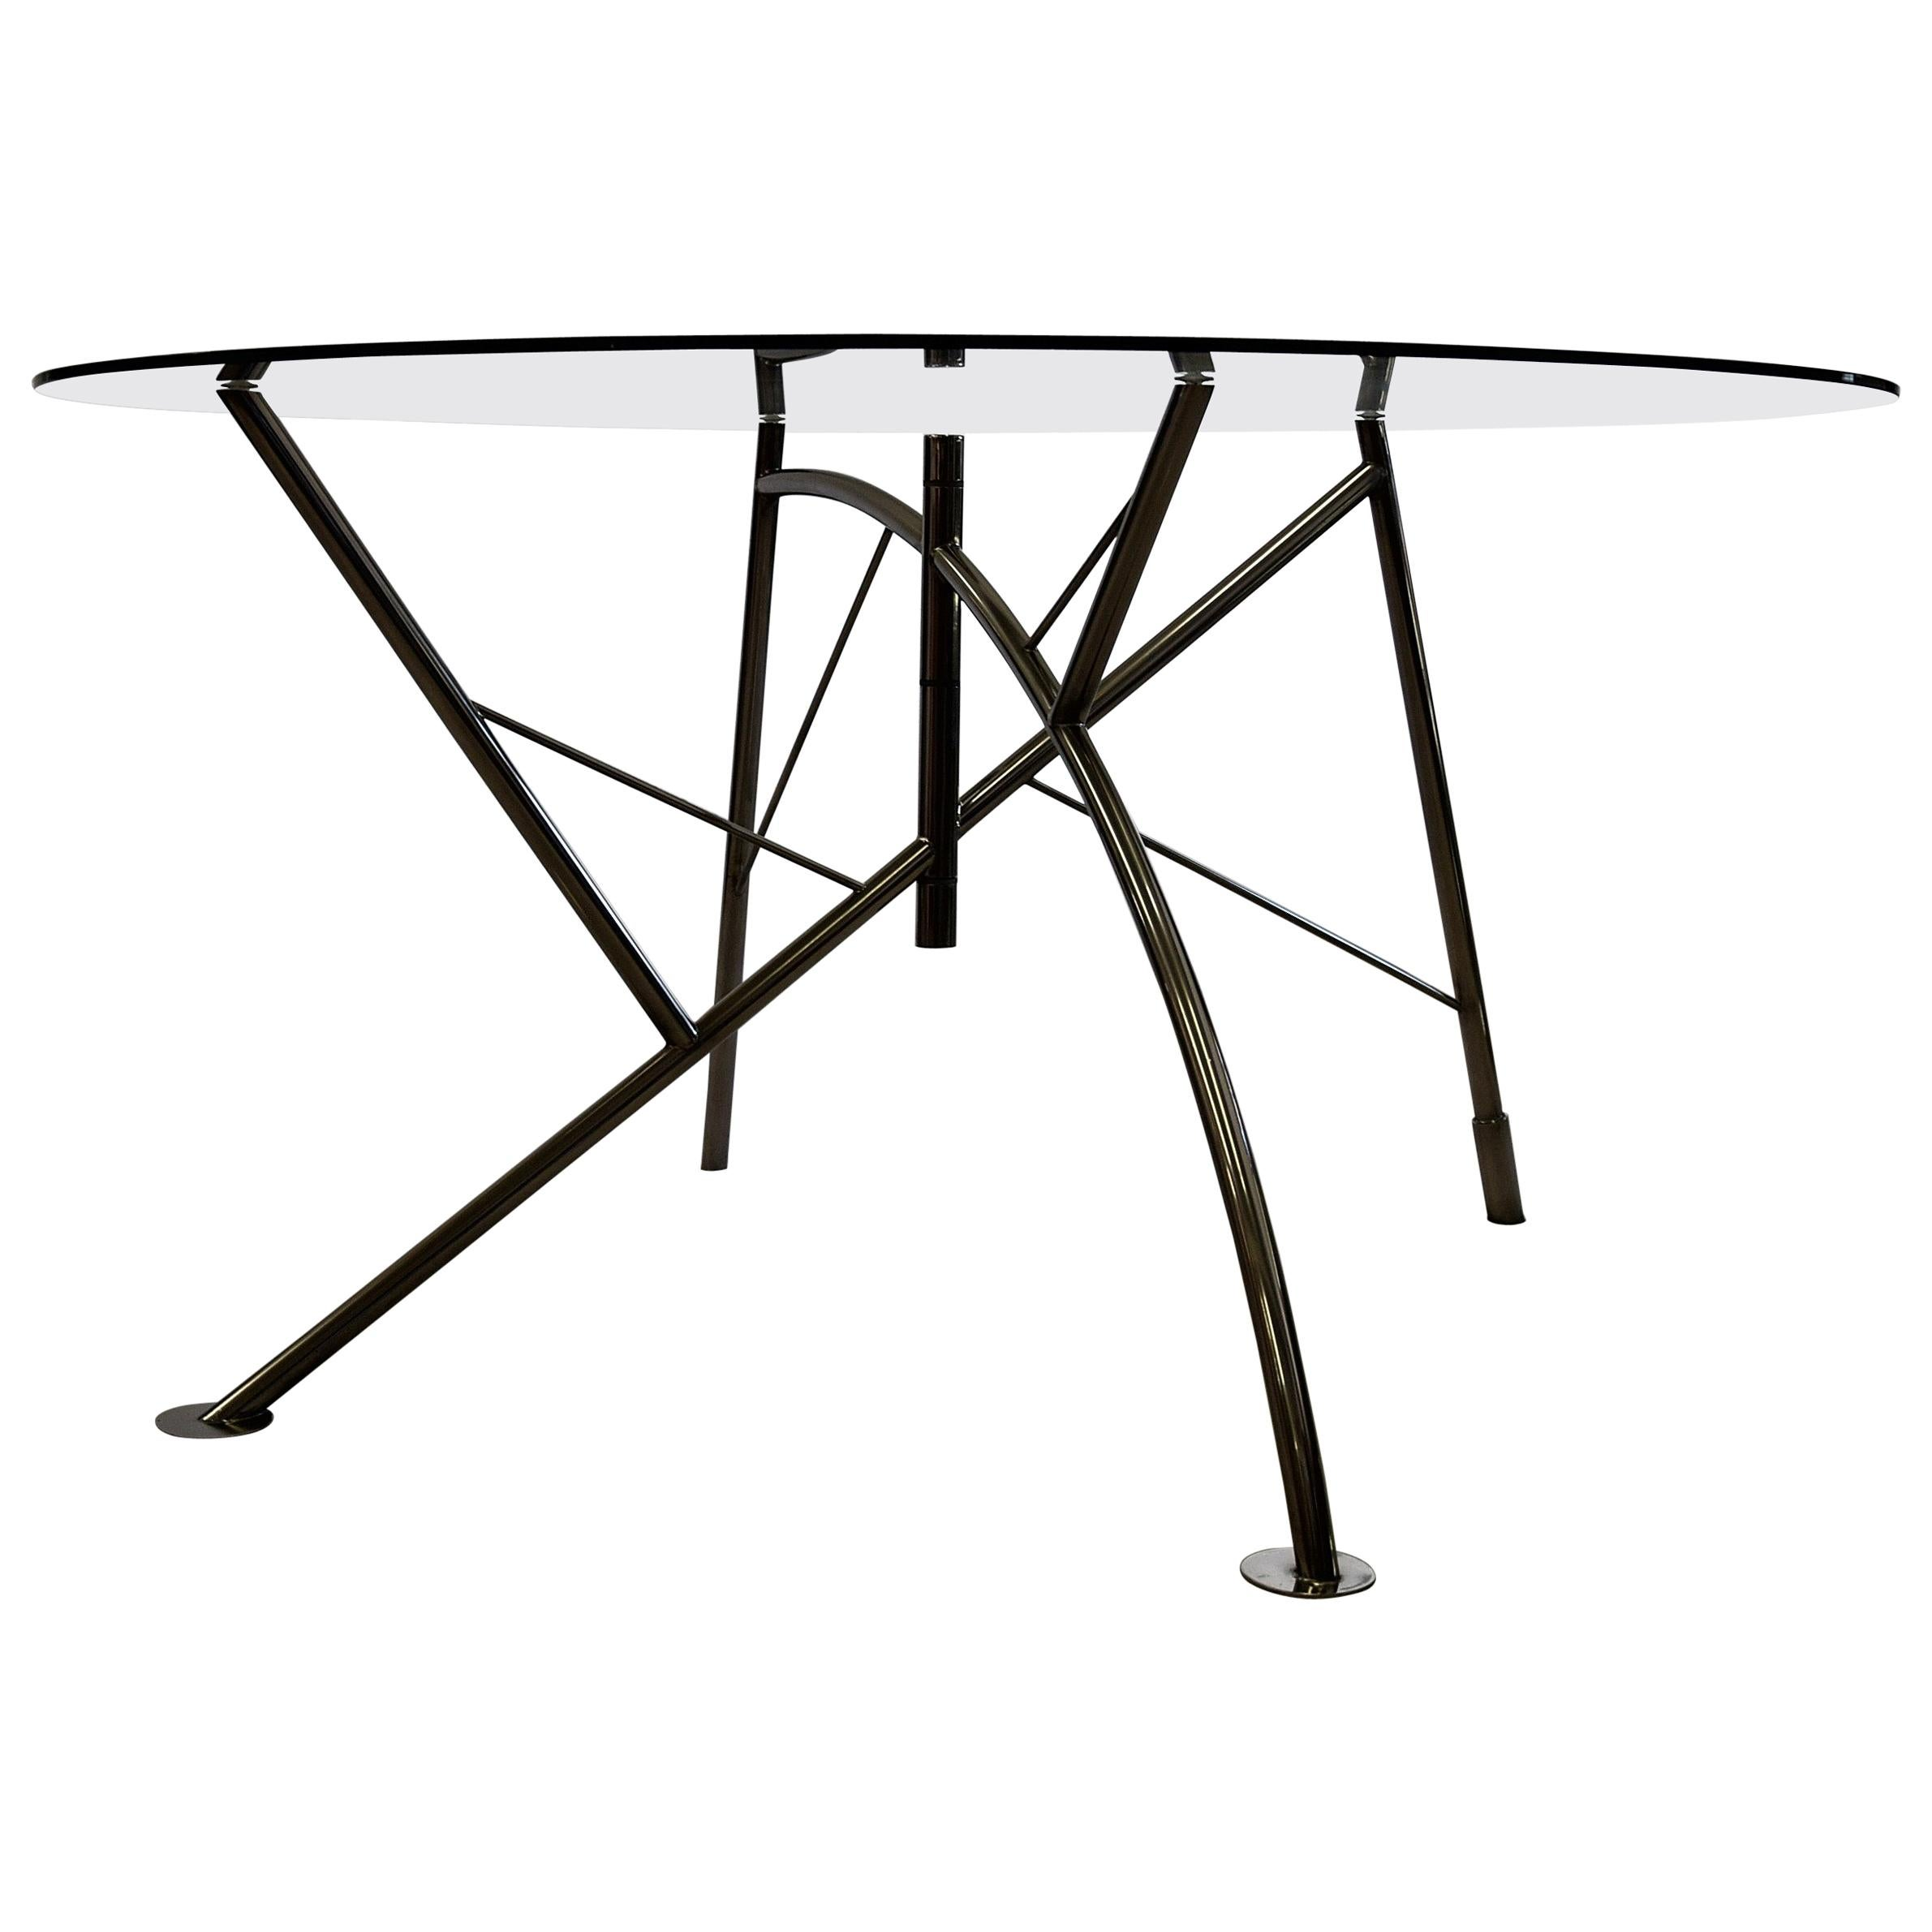 philippe starck dole melipone dining table first edition by xo for Civil War Interior Decor philippe starck dole melipone dining table first edition by xo for sale